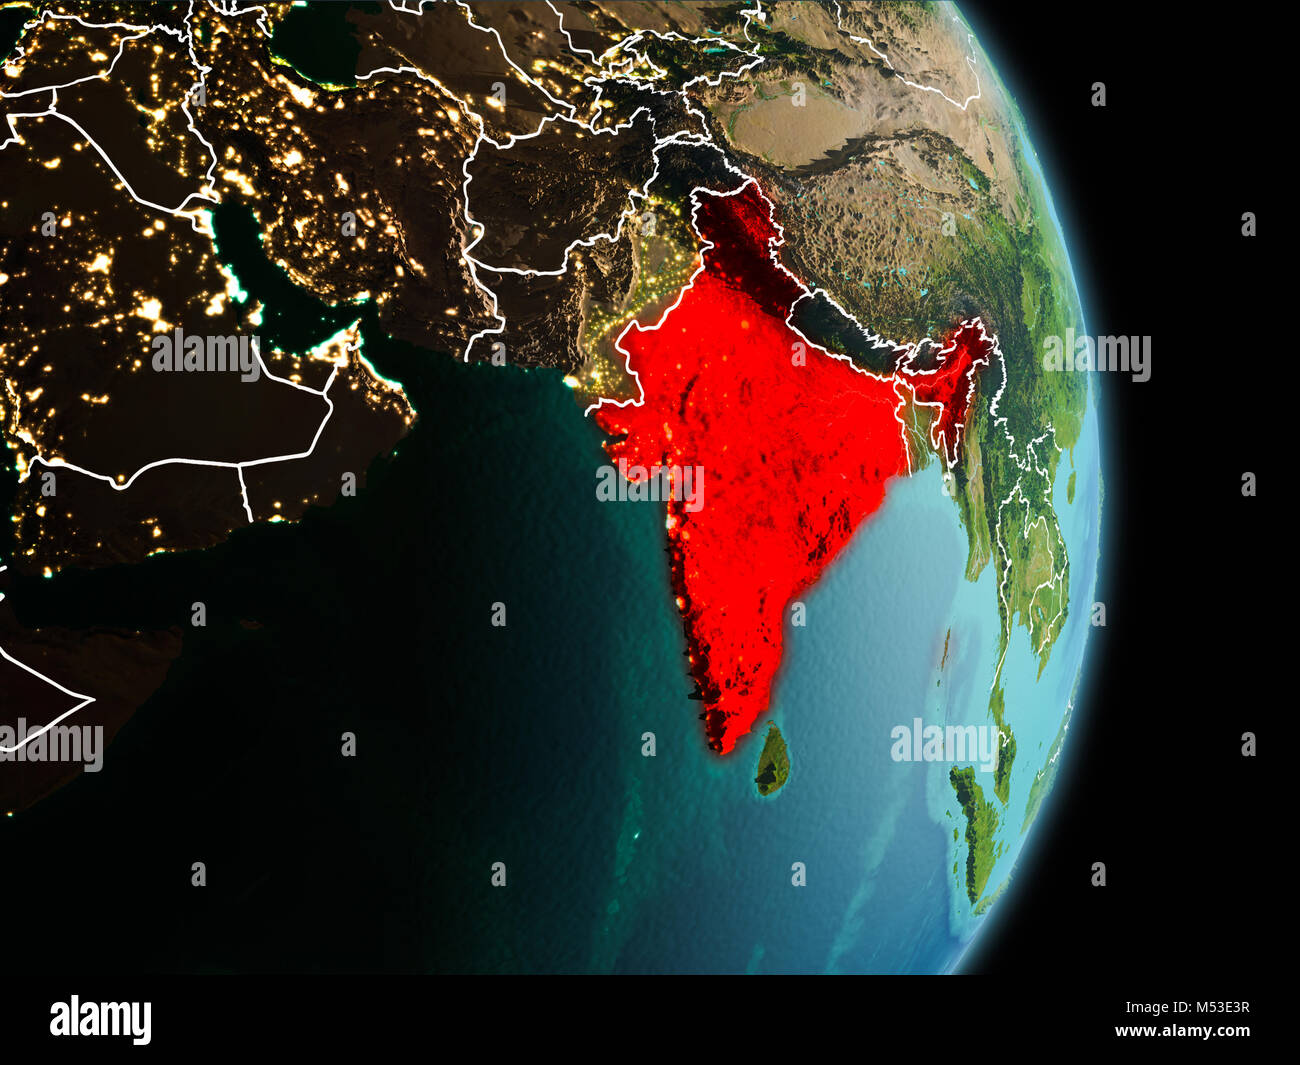 India political map stock photos india political map stock images satellite morning view of india highlighted in red on planet earth with visible border lines and gumiabroncs Gallery